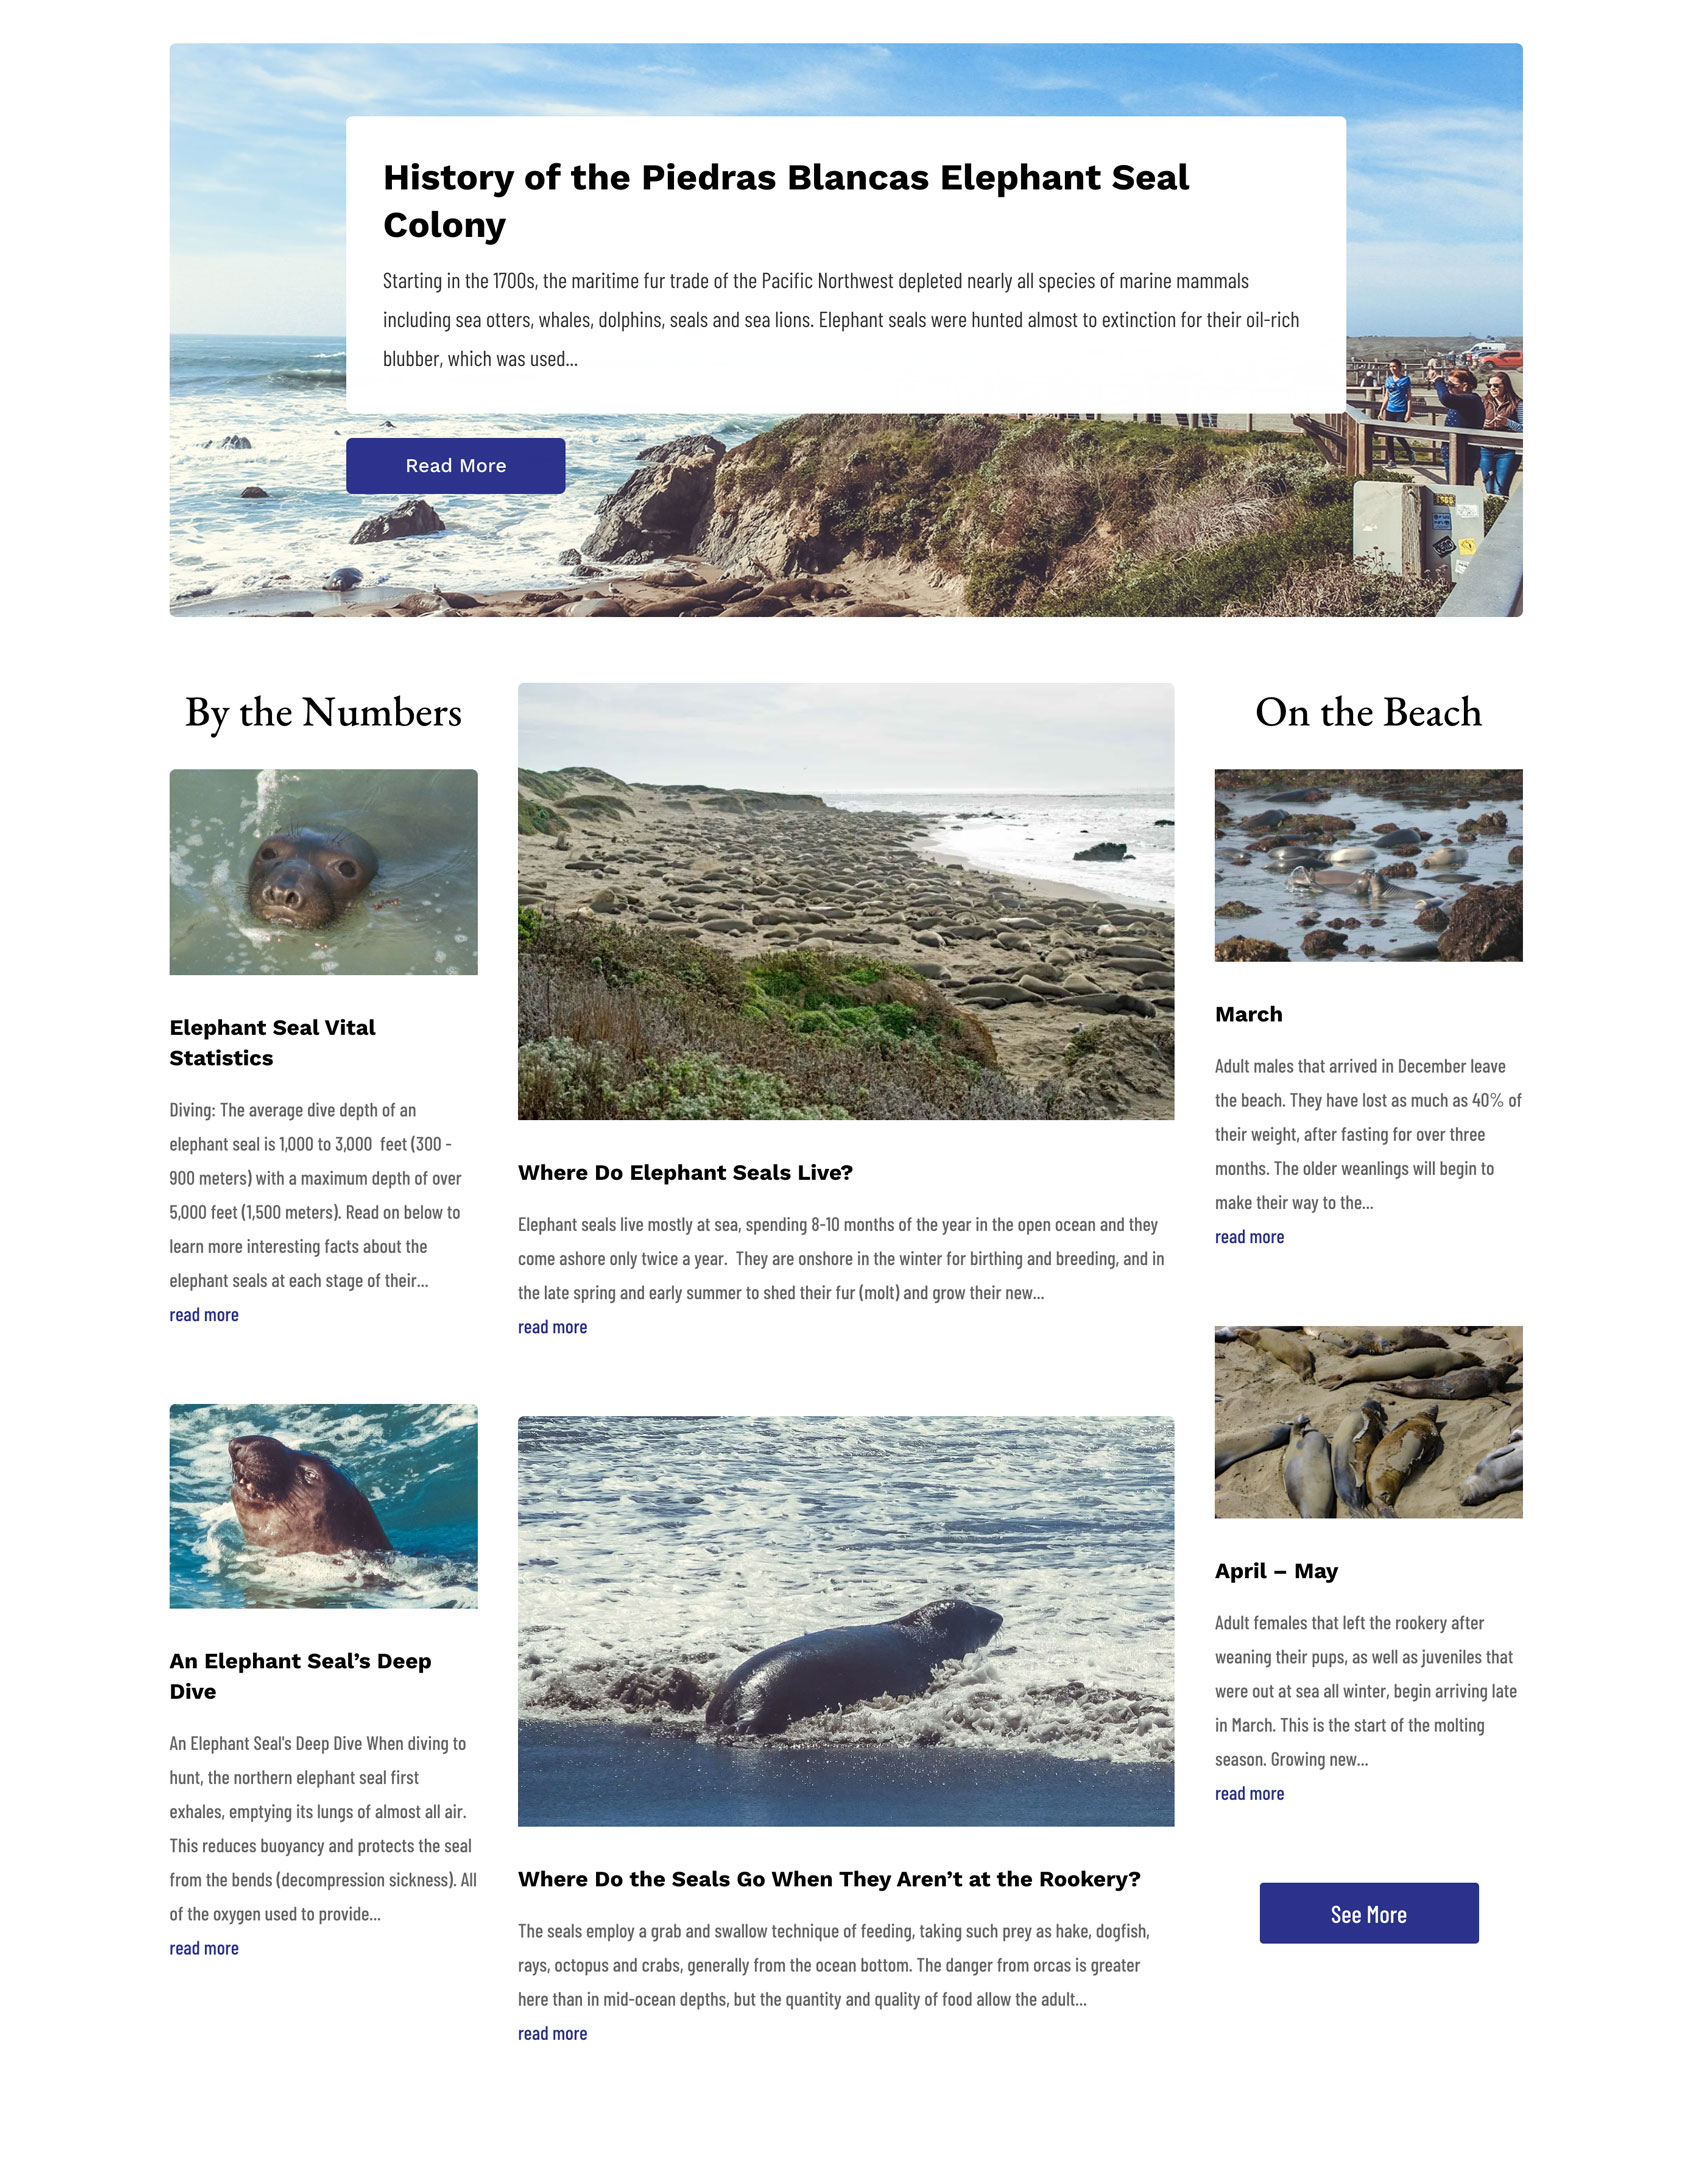 Web Development of ElephantSeal.org